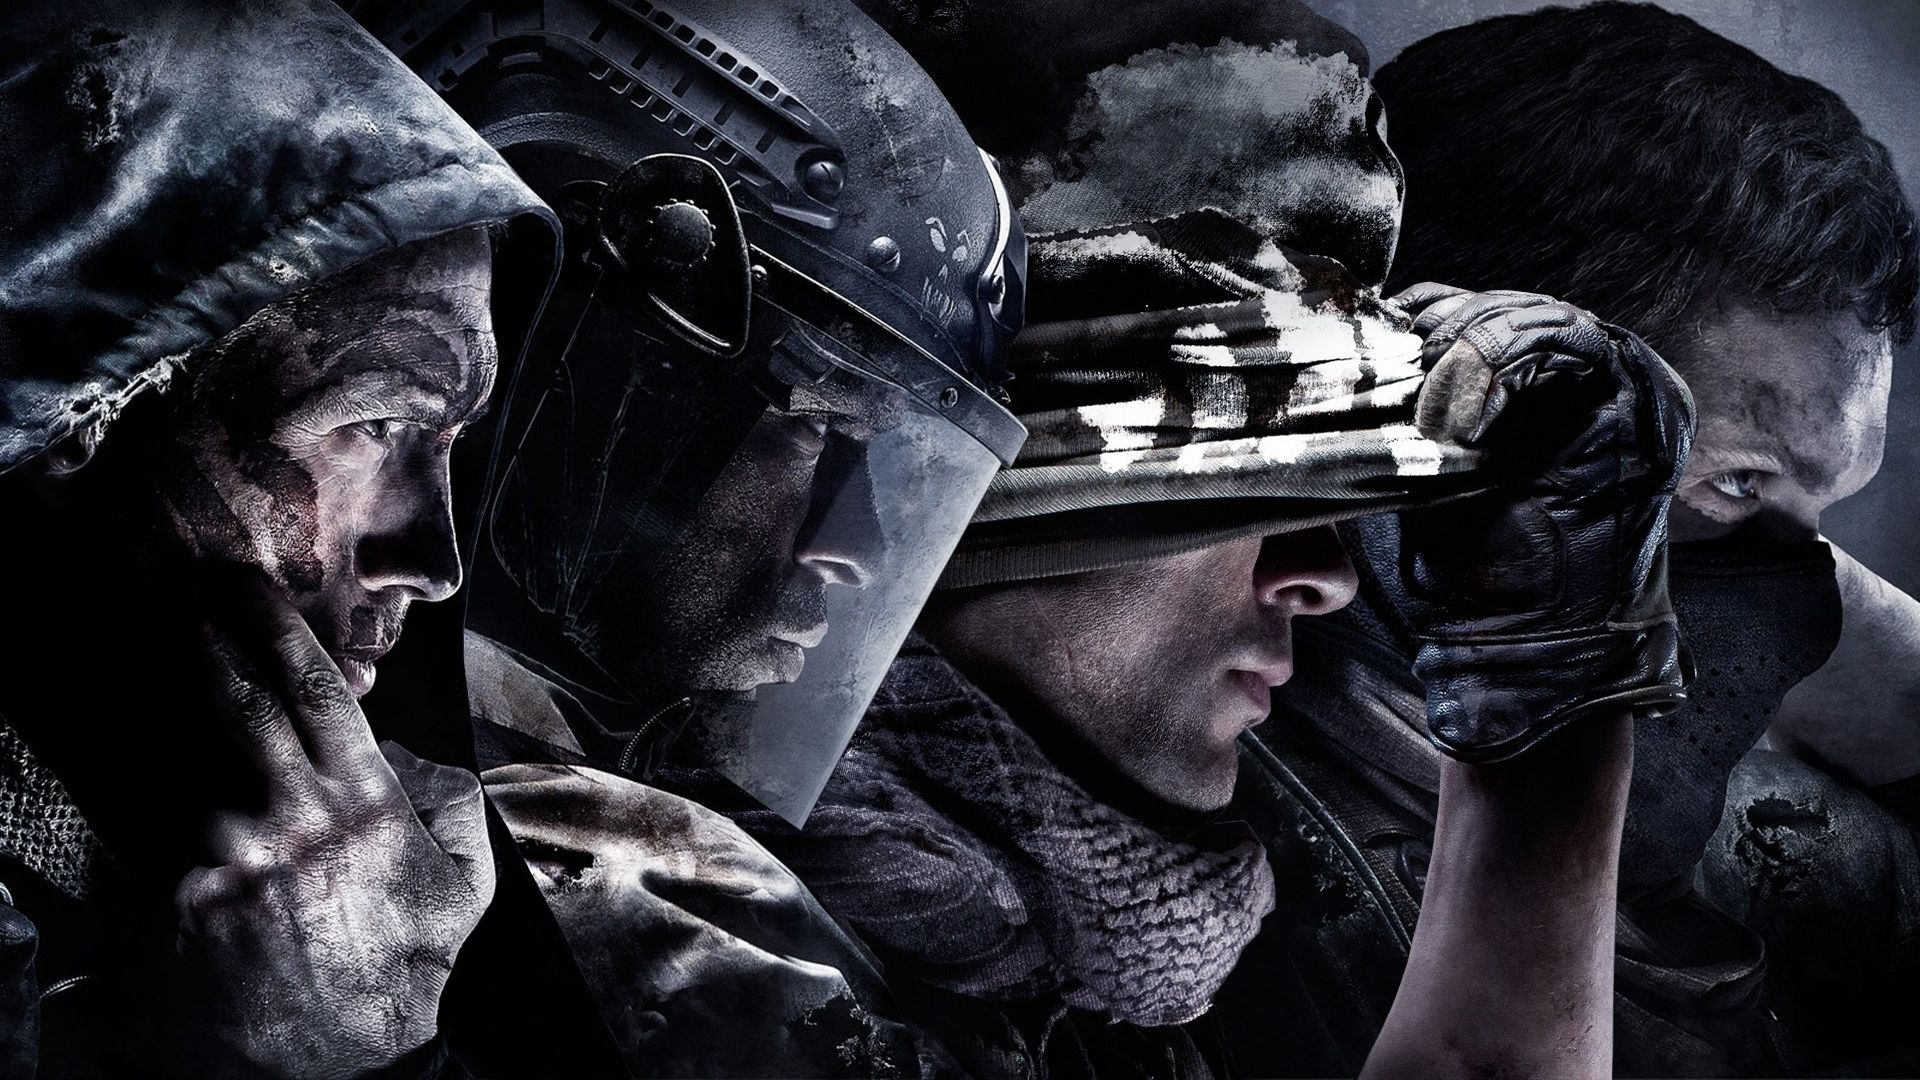 Call of duty ghosts action video game war hd wallpaper http call of duty ghosts action video game war hd wallpaper httpwww voltagebd Choice Image